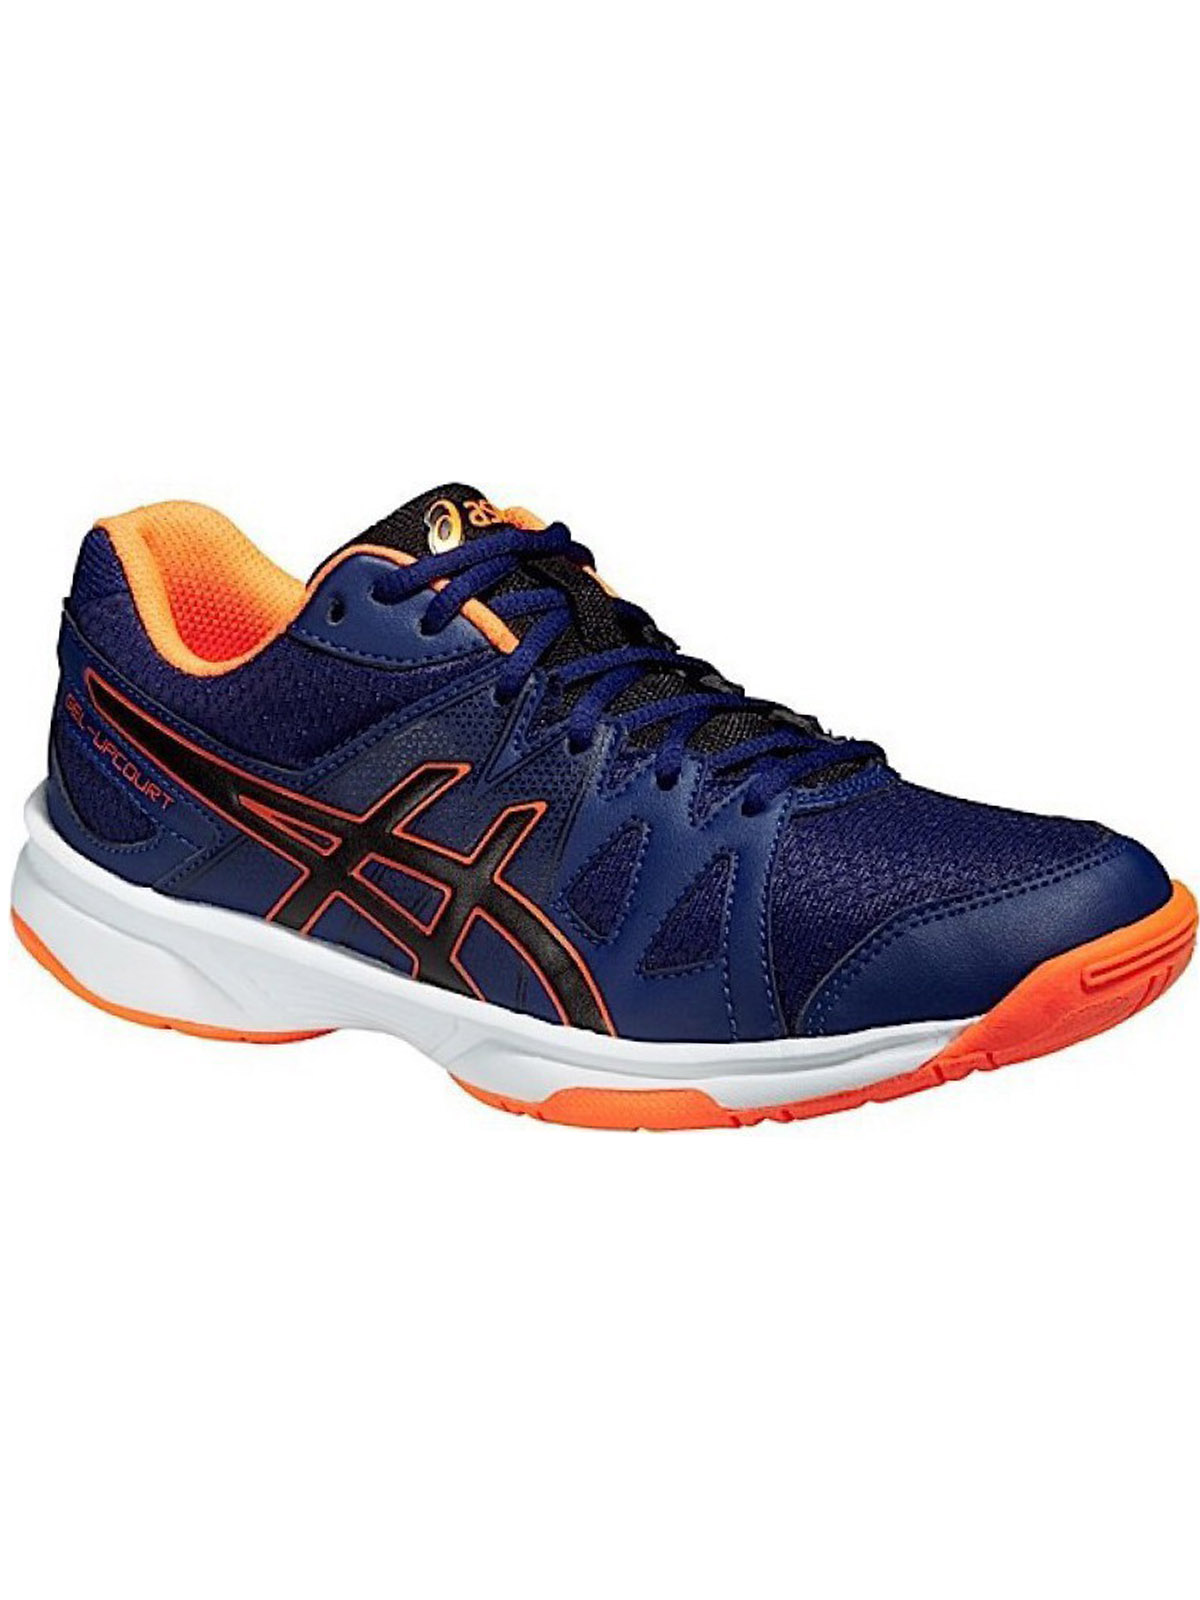 ASICS Gel Upcourt GS volley SC412N 5090